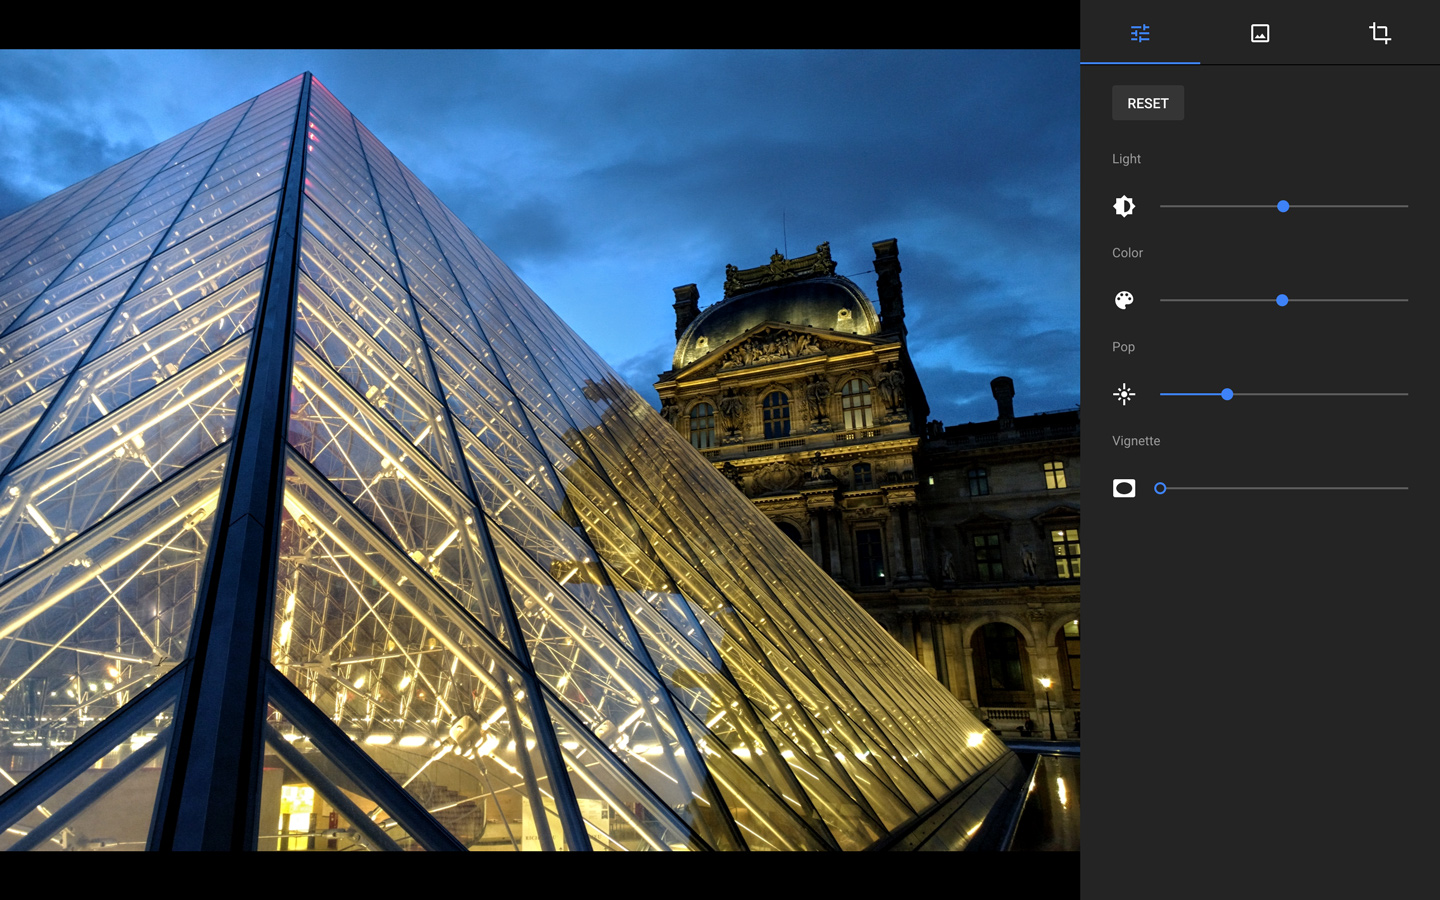 Google Photos offers useful but basic editing tools, a change from the more sophisticated options it previously offered to browser-based photo adjustments.